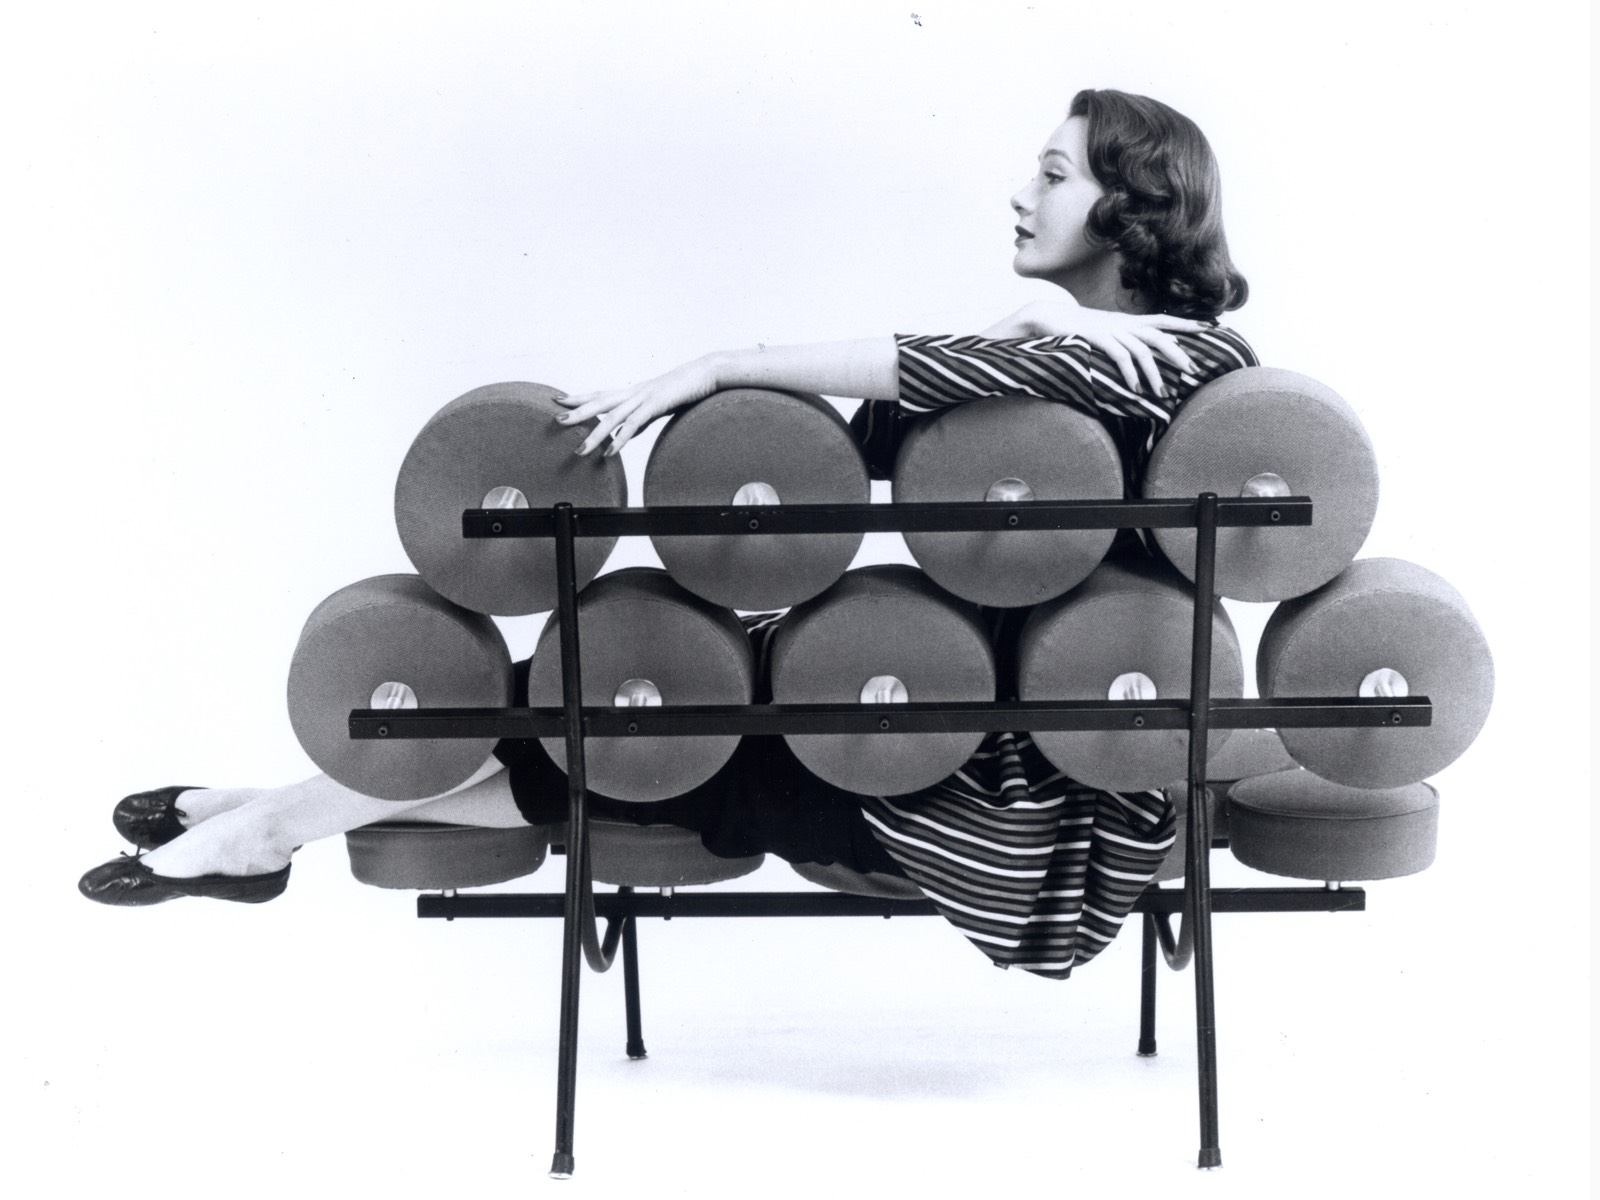 A Vintage Black And White Photo Of Woman With Her Feet Up On